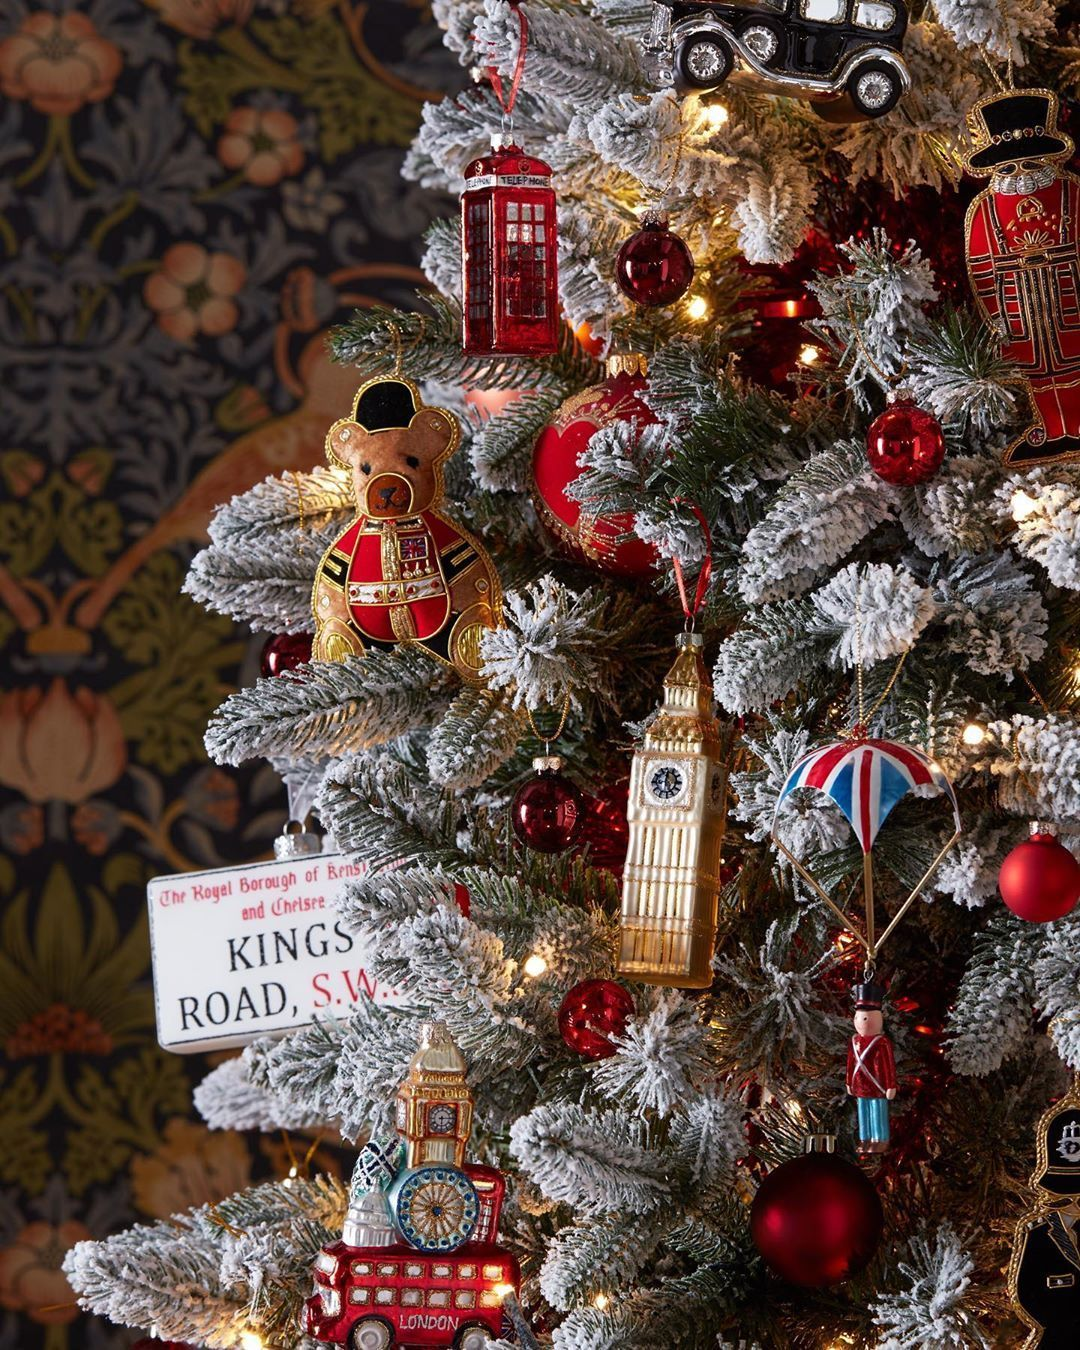 John Lewis Partners On Instagram The Christmas Tree Equivalent Of Taking An Open Top Bus Tour Of London In 2020 Tree Decorations Christmas Themes London Christmas